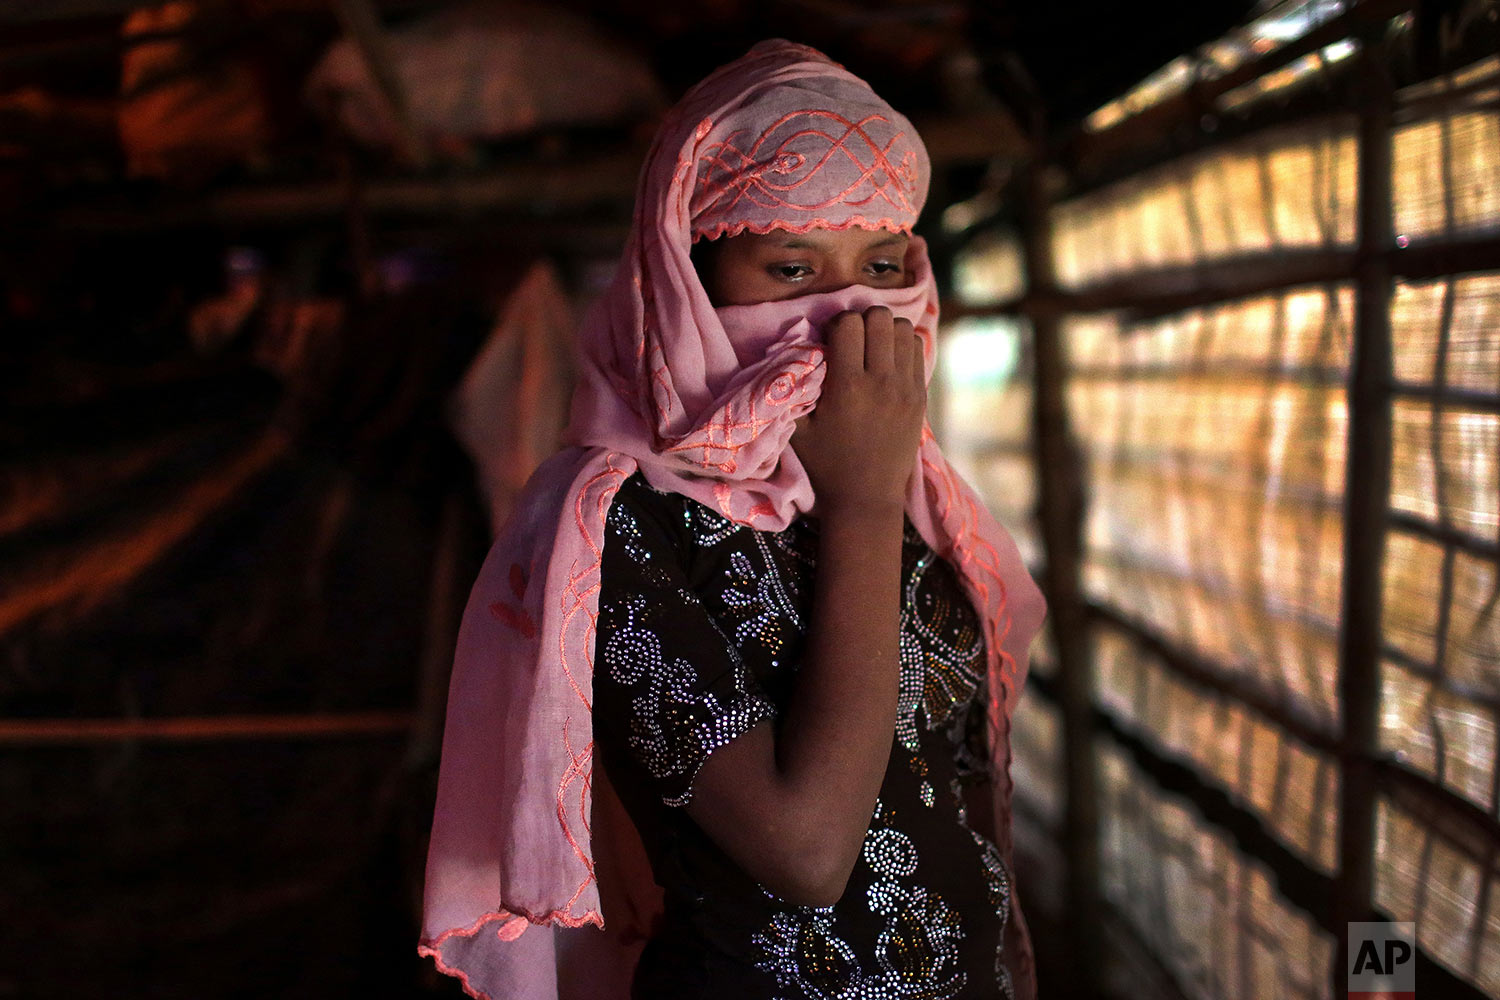 In this Sunday, Nov. 19, 2017, photo, R, 13, covers her face with her headscarf while being photographed in her tent in Kutupalong refugee camp in Bangladesh. (AP Photo/Wong Maye-E)